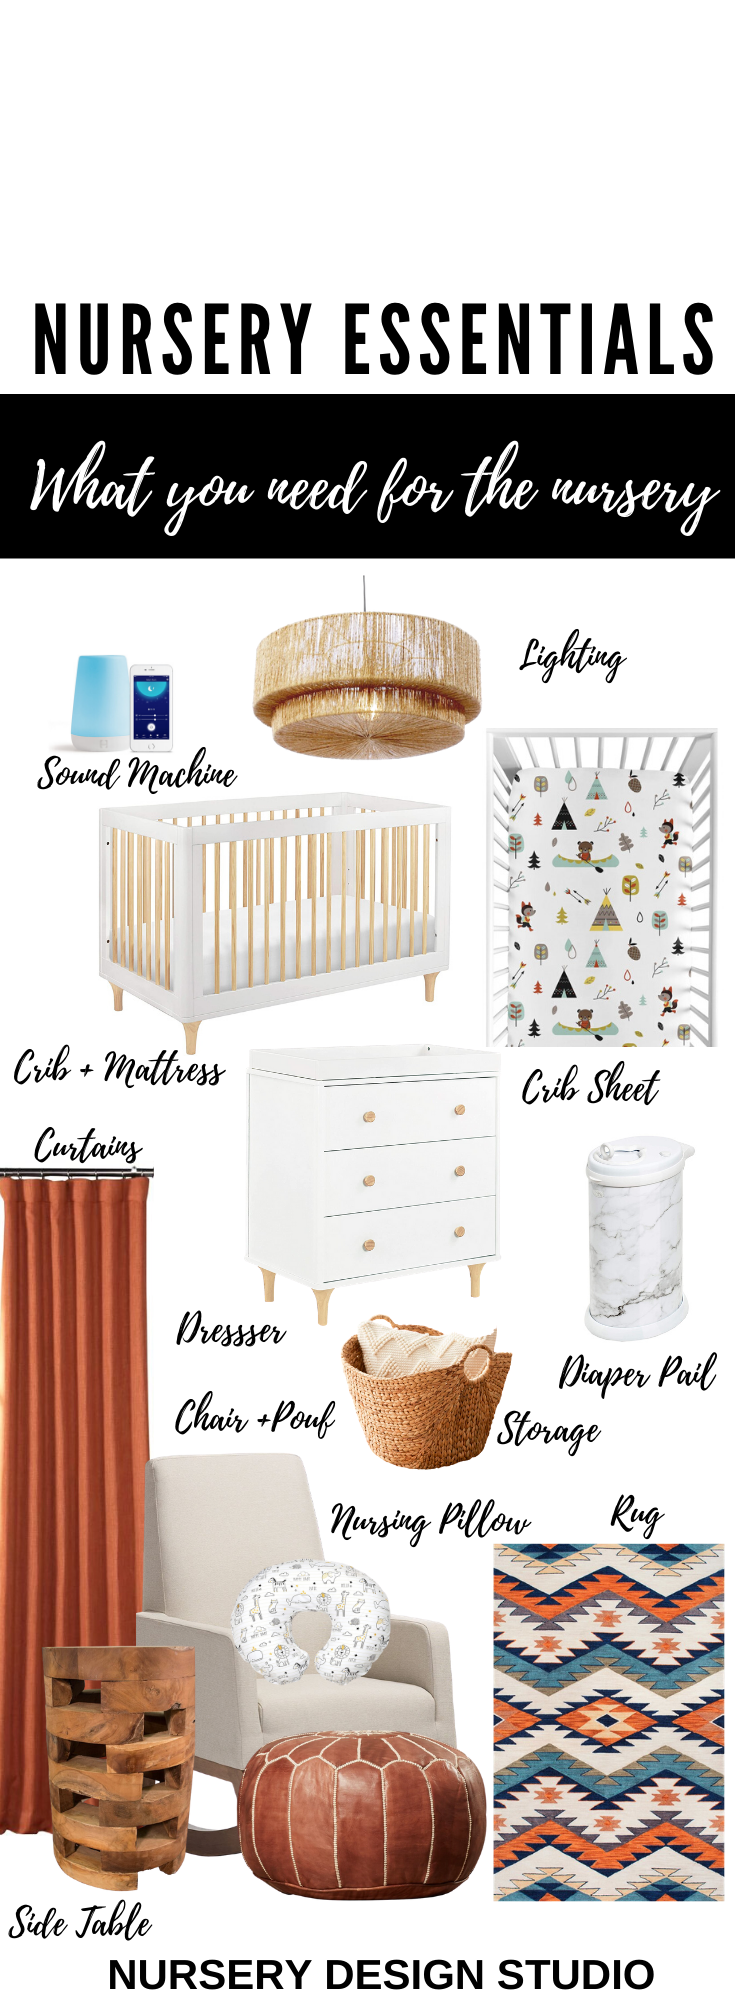 WHAT YOU NEED FOR THE NURSERY